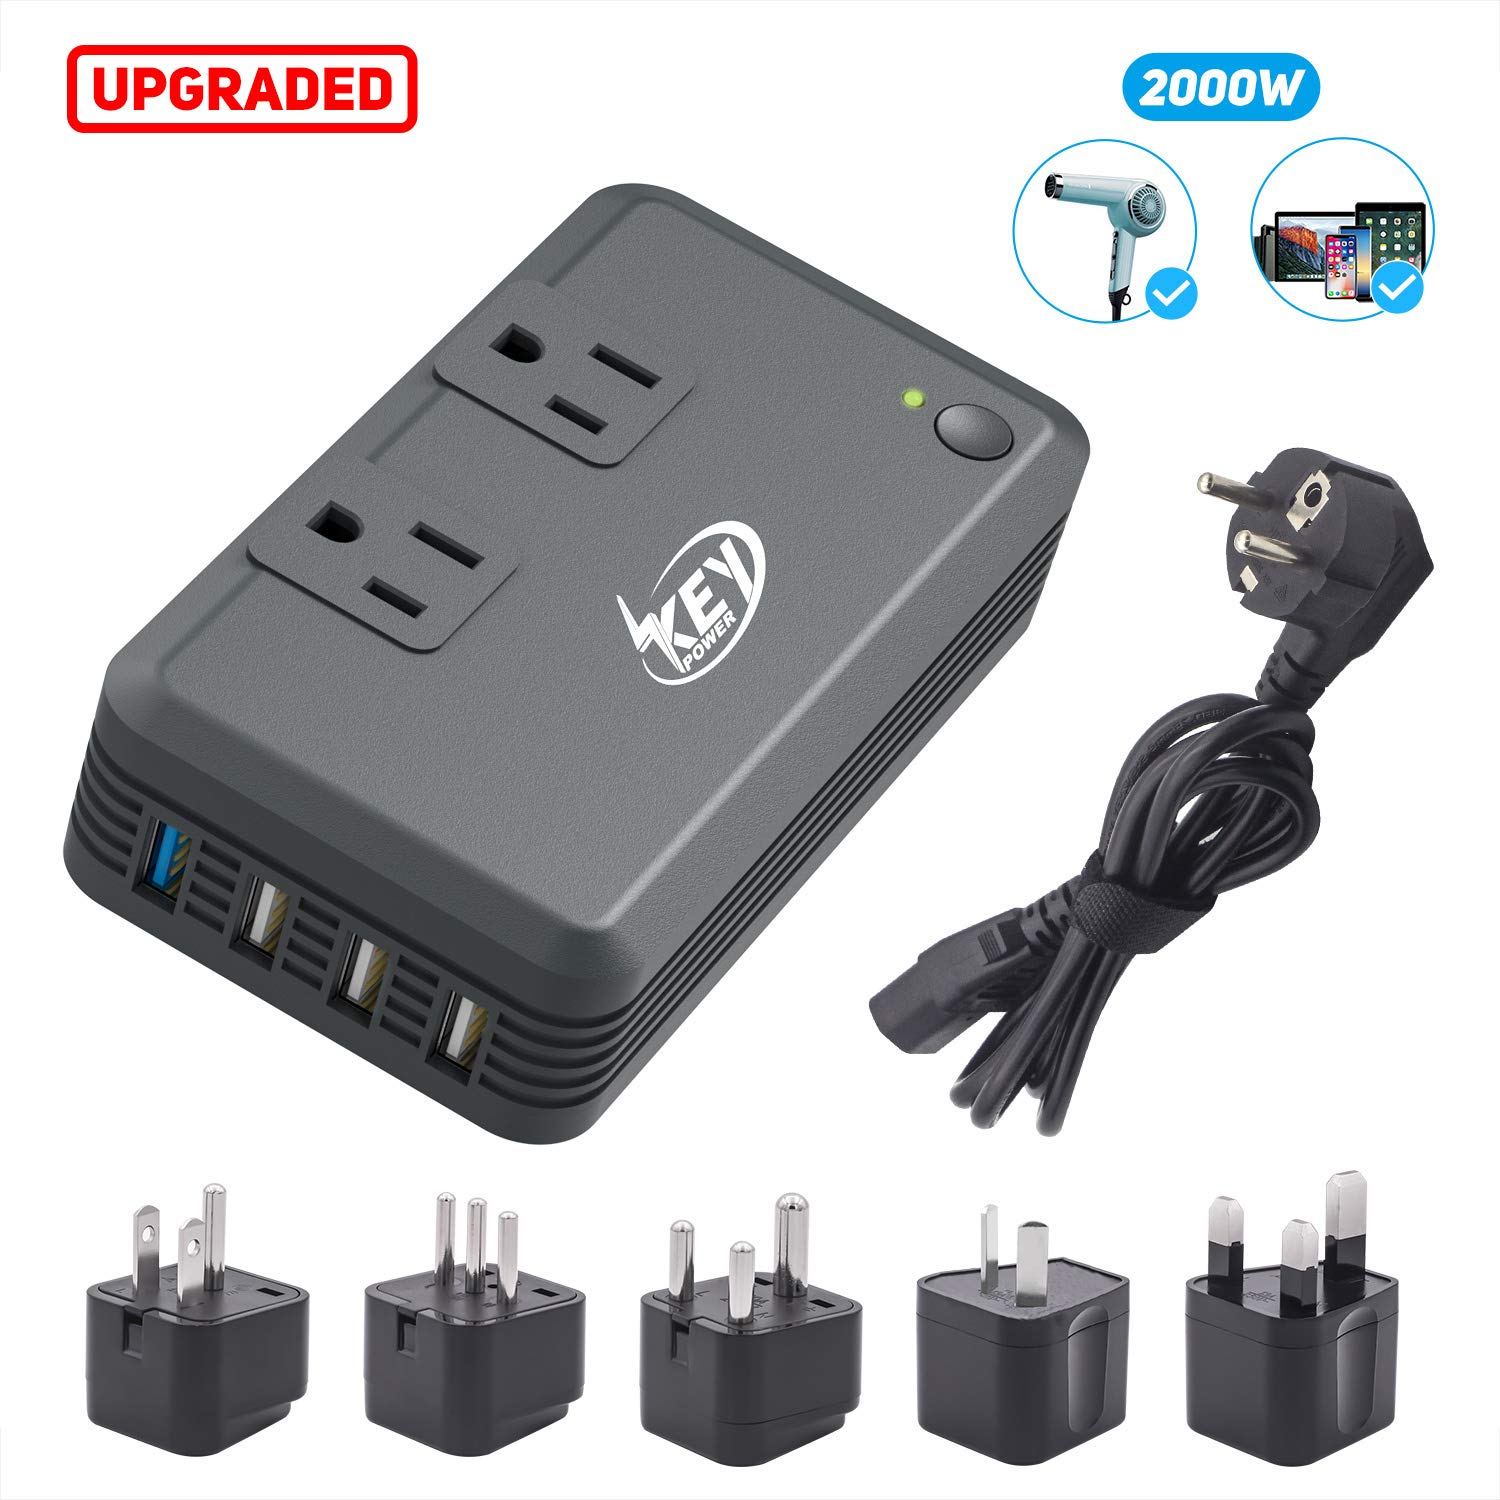 Key Power 2000-Watt Step Down 220V to 110V Voltage Converter & International Travel Adapter Plugs - [Use for USA High-Wattage Appliance Overseas] (Upgraded with Advanced Multiple Protections)